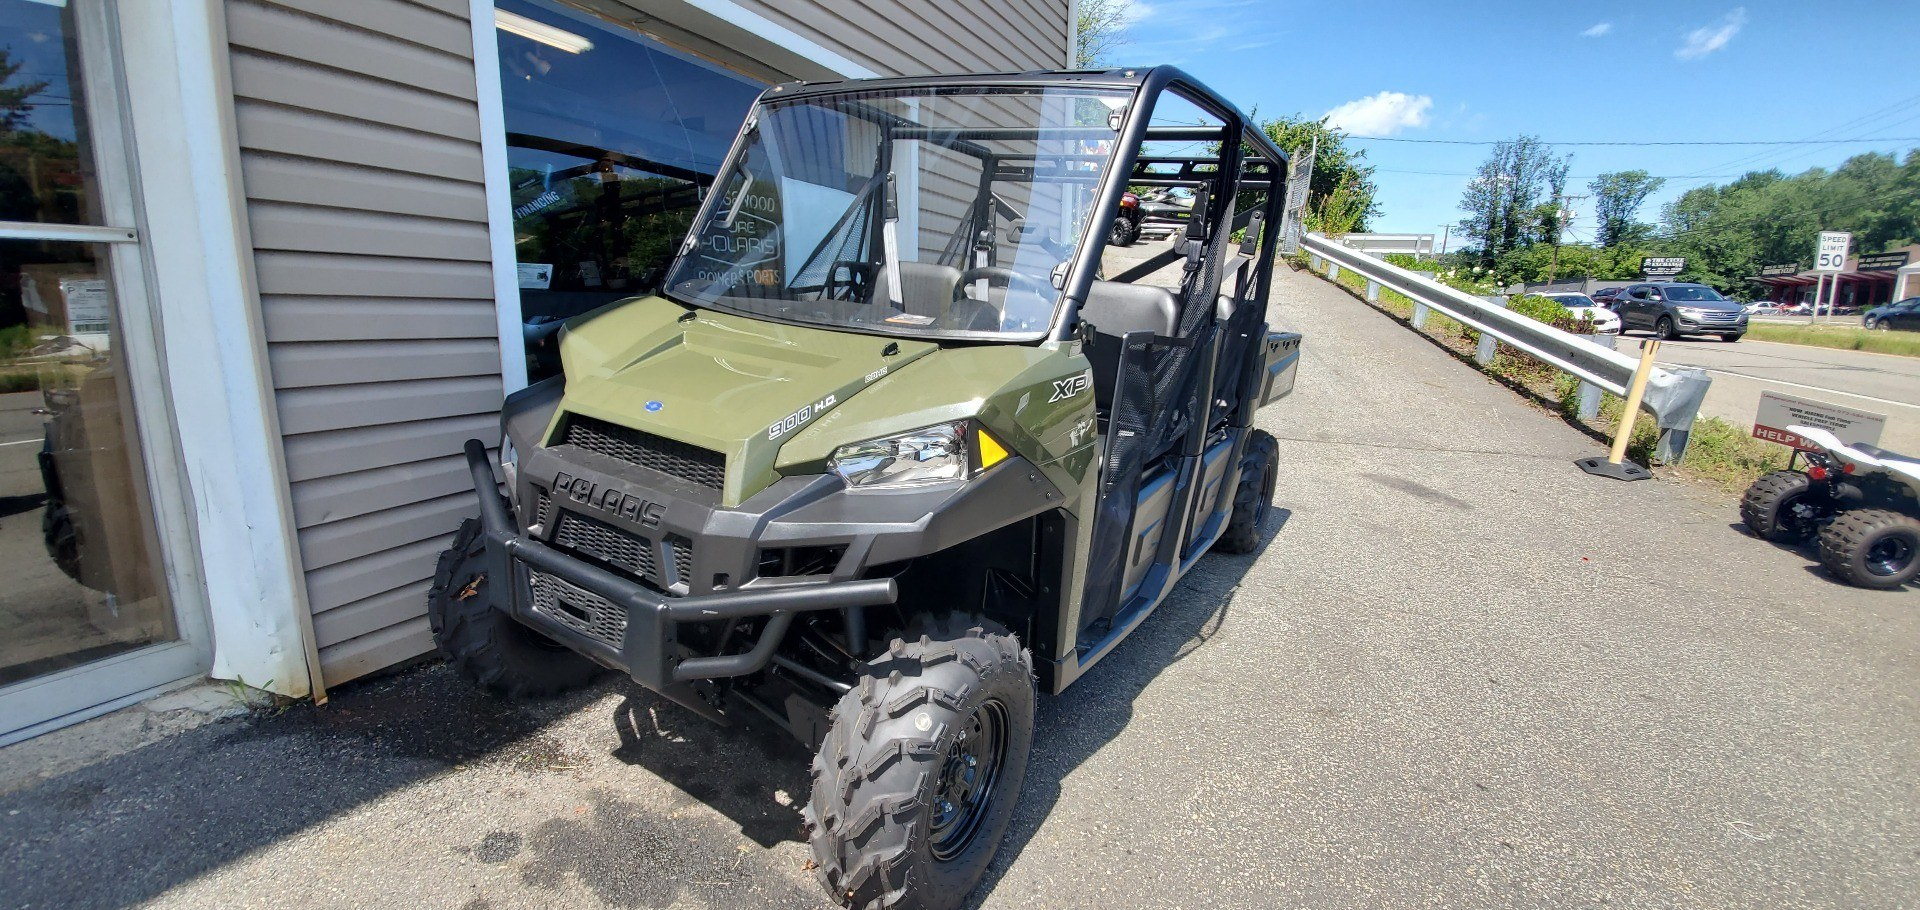 2019 Polaris Ranger Crew XP 900 in Ledgewood, New Jersey - Photo 3